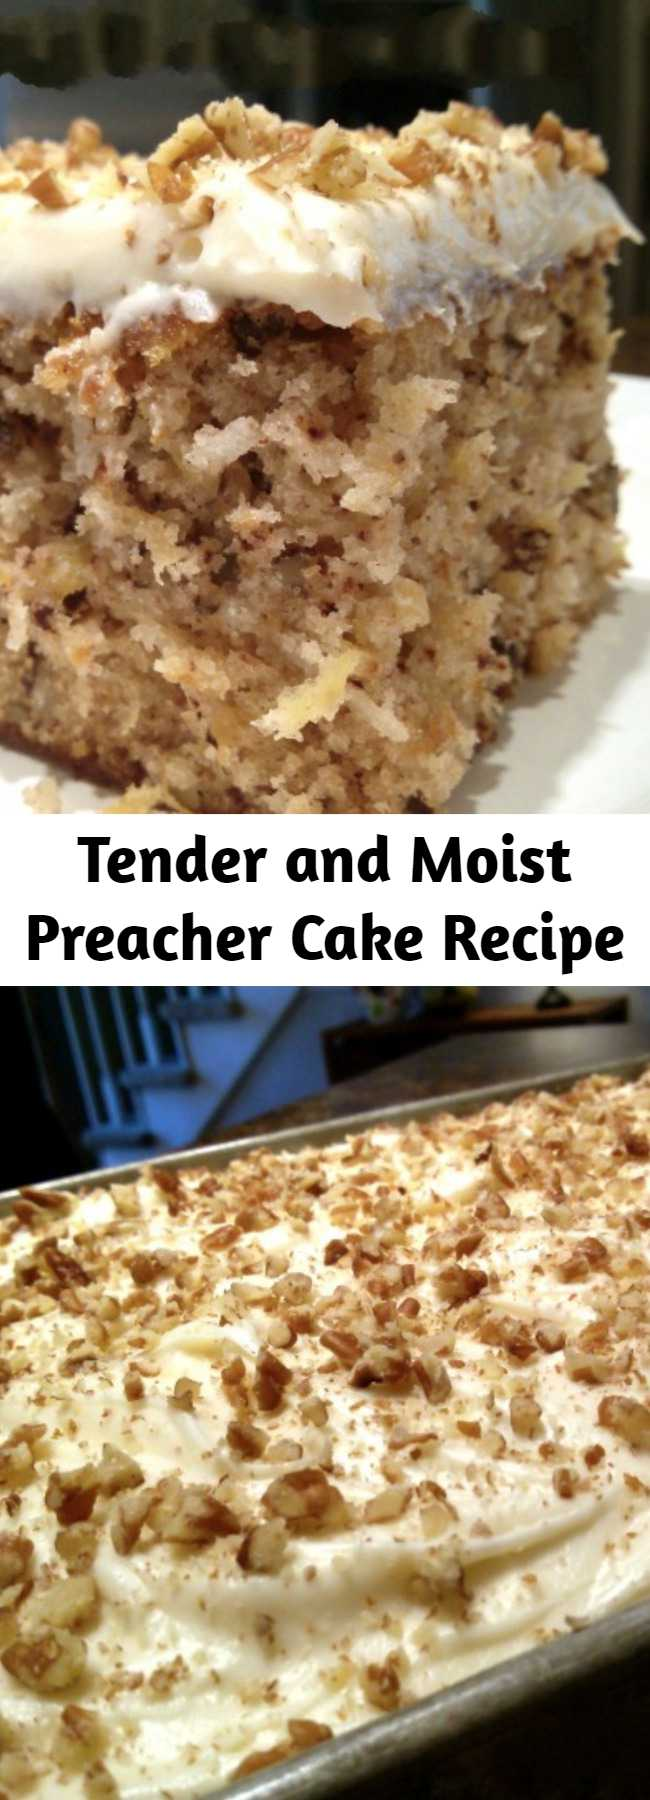 Tender and Moist Preacher Cake Recipe - Tender, moist cake recipe with crushed pineapple, pecans and coconut with a cream cheese frosting. An old Southern tradition to make this cake when the preacher comes by for a visit!